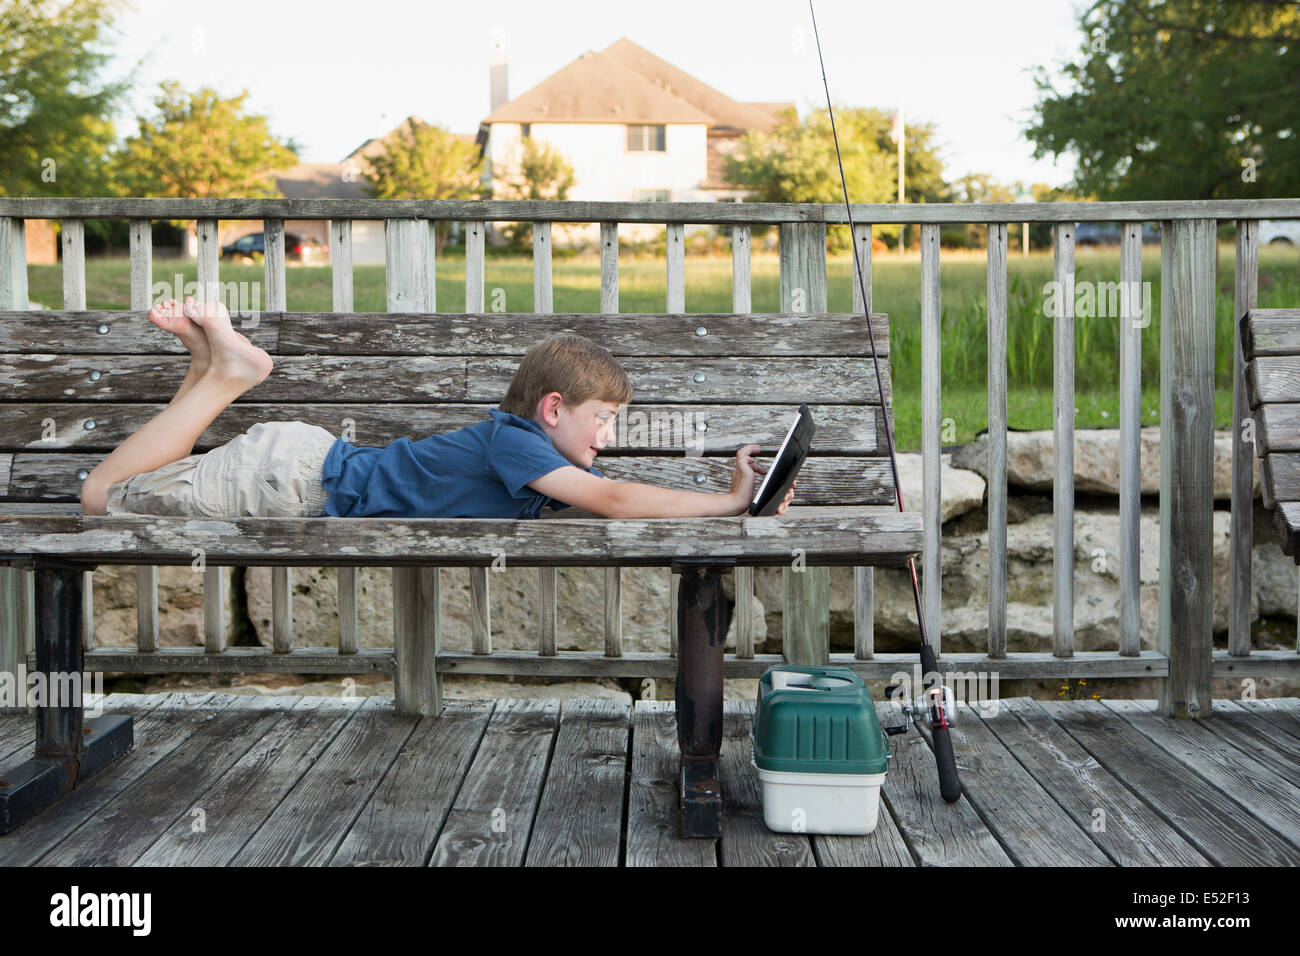 A young boy outdoors lying on a bench using a digital tablet. fishing equipment. Stock Photo